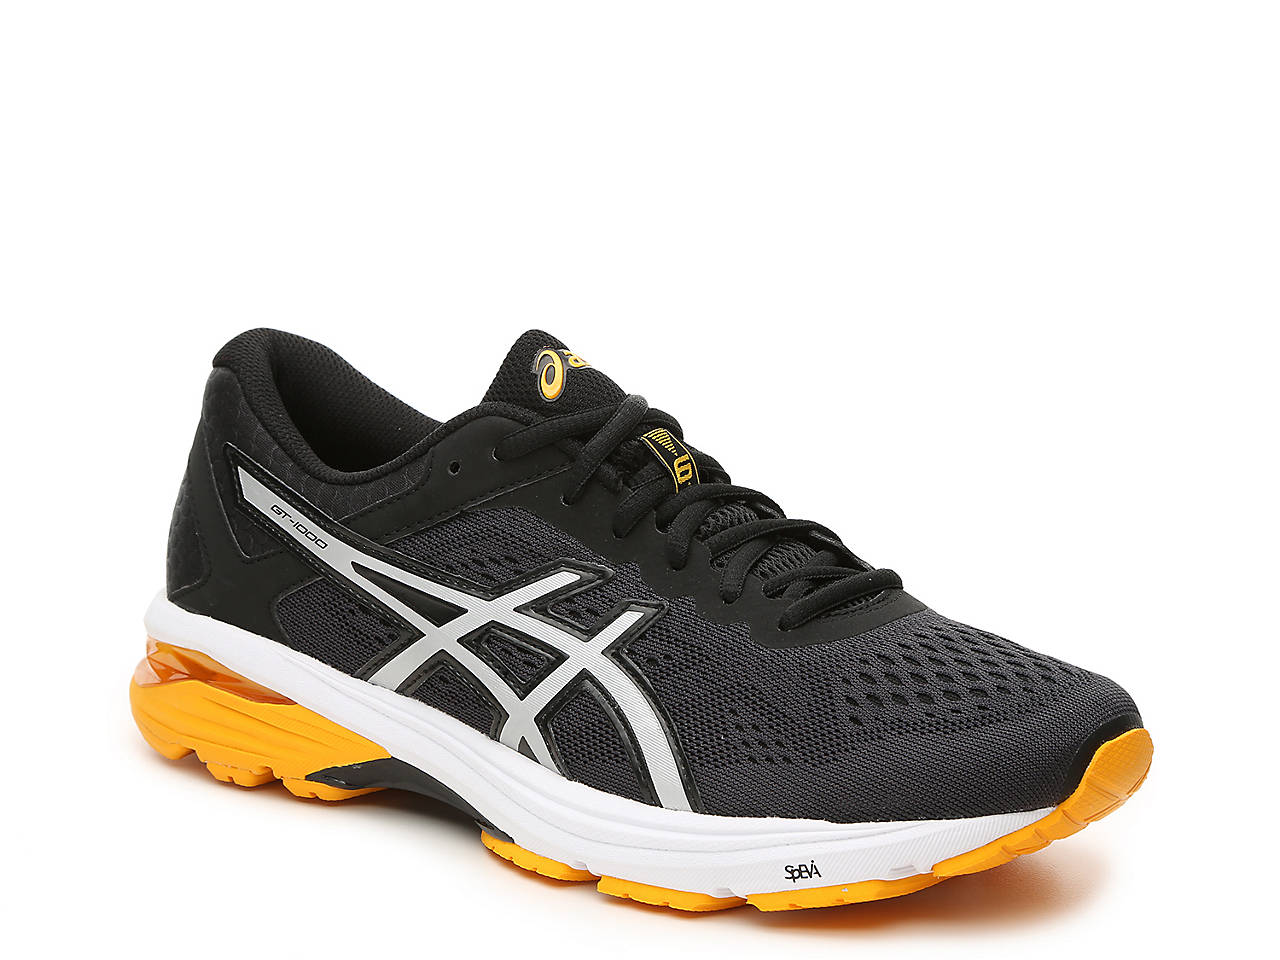 7e8ccadc13 ASICS GT-1000 6 Performance Running Shoe - Men's Men's Shoes | DSW